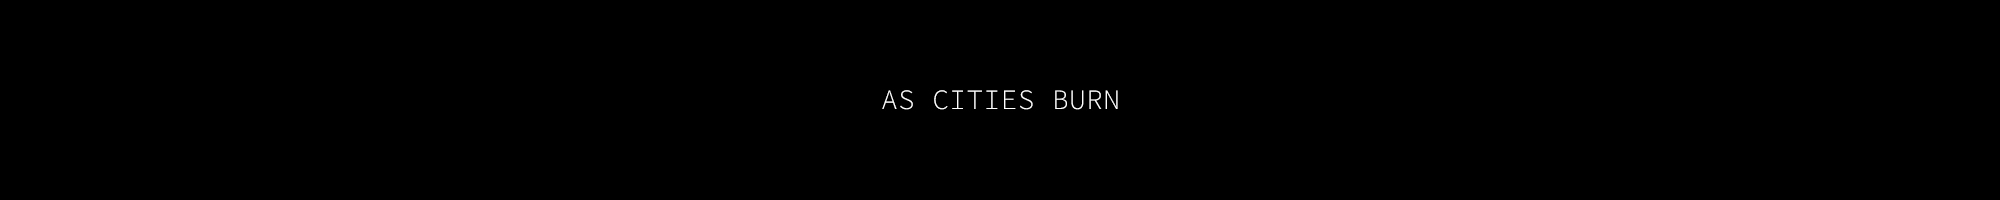 As Cities Burn logo